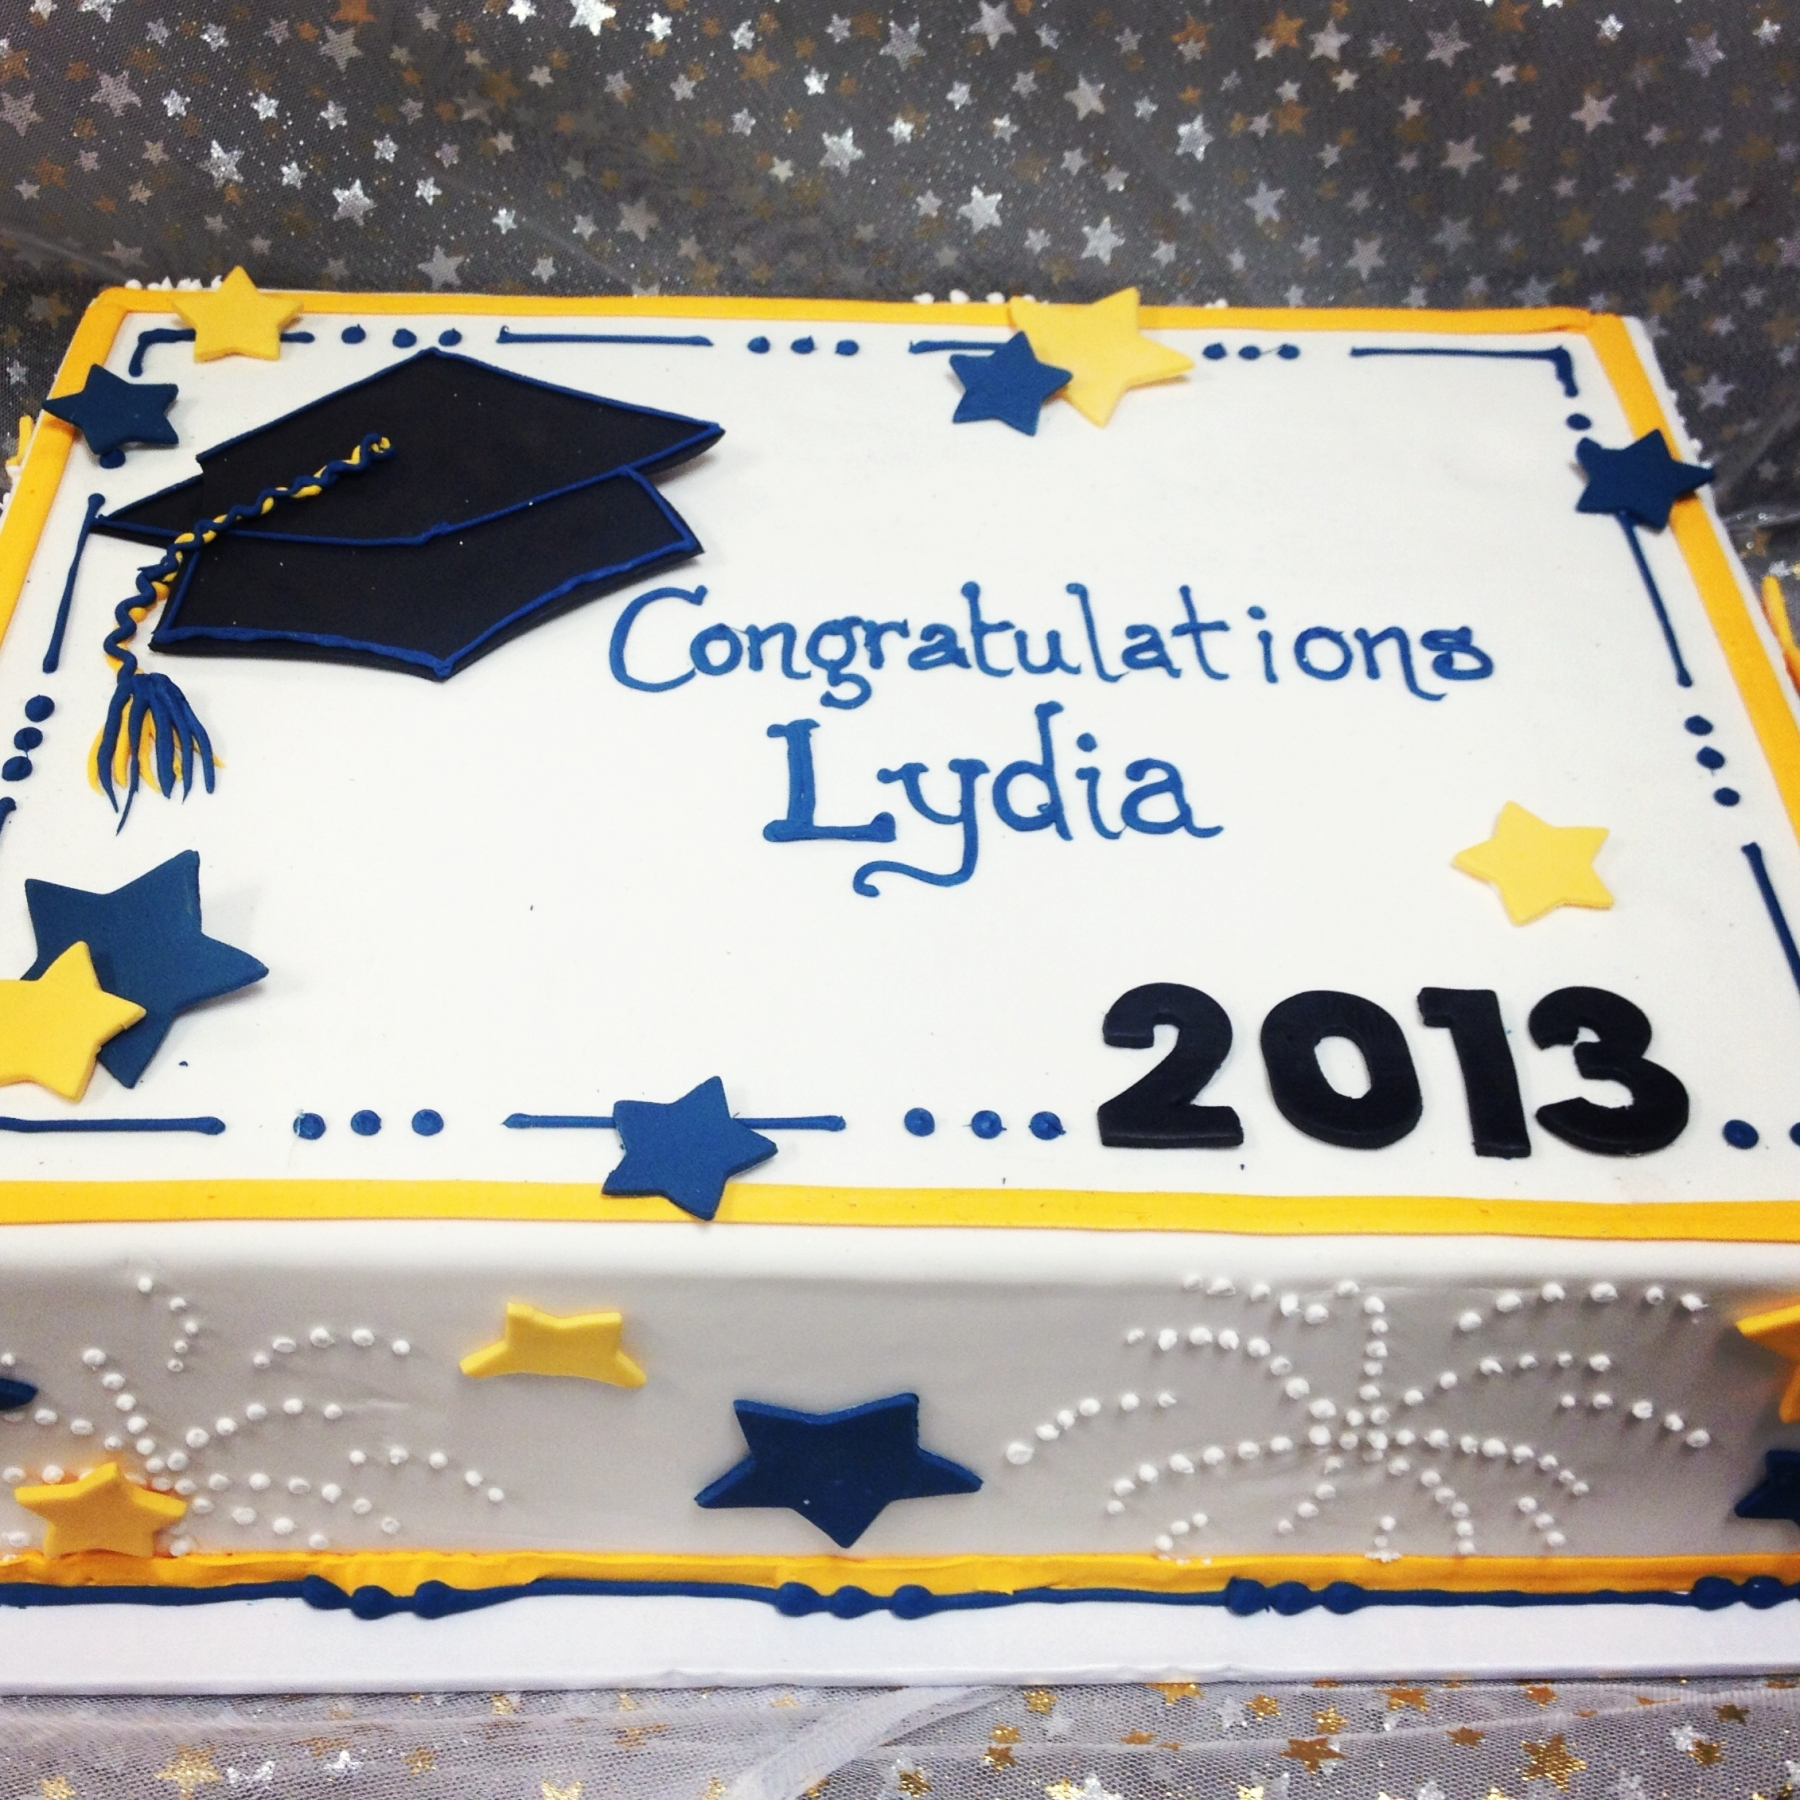 Simple Cake Designs For Graduation : 1000+ images about graduation party ideas on Pinterest ...